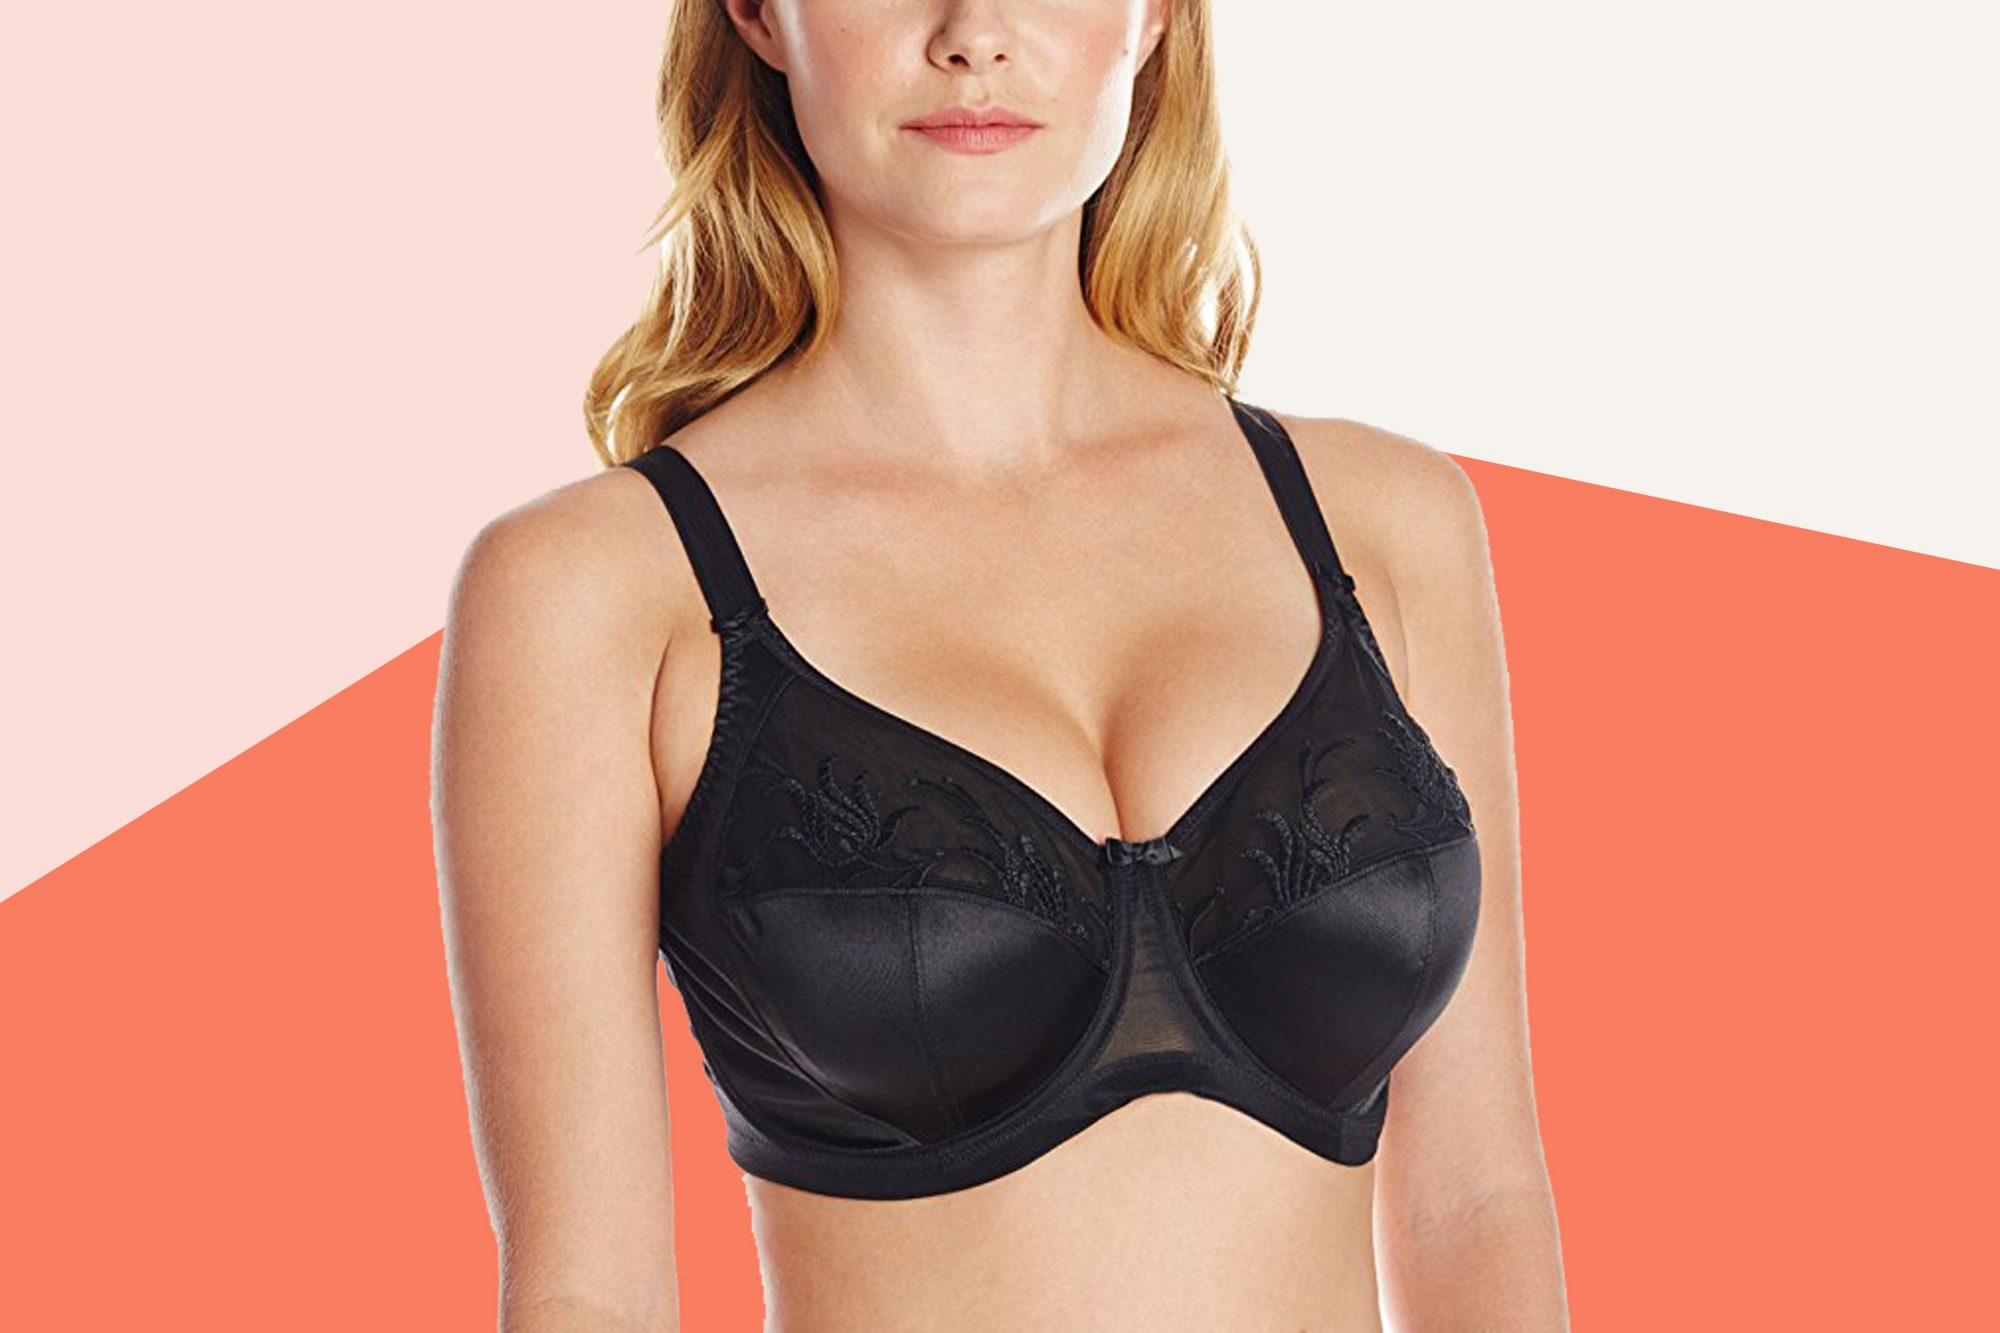 The Foolproof Way to Find Your Real Bra Size, According to Bra Enthusiasts